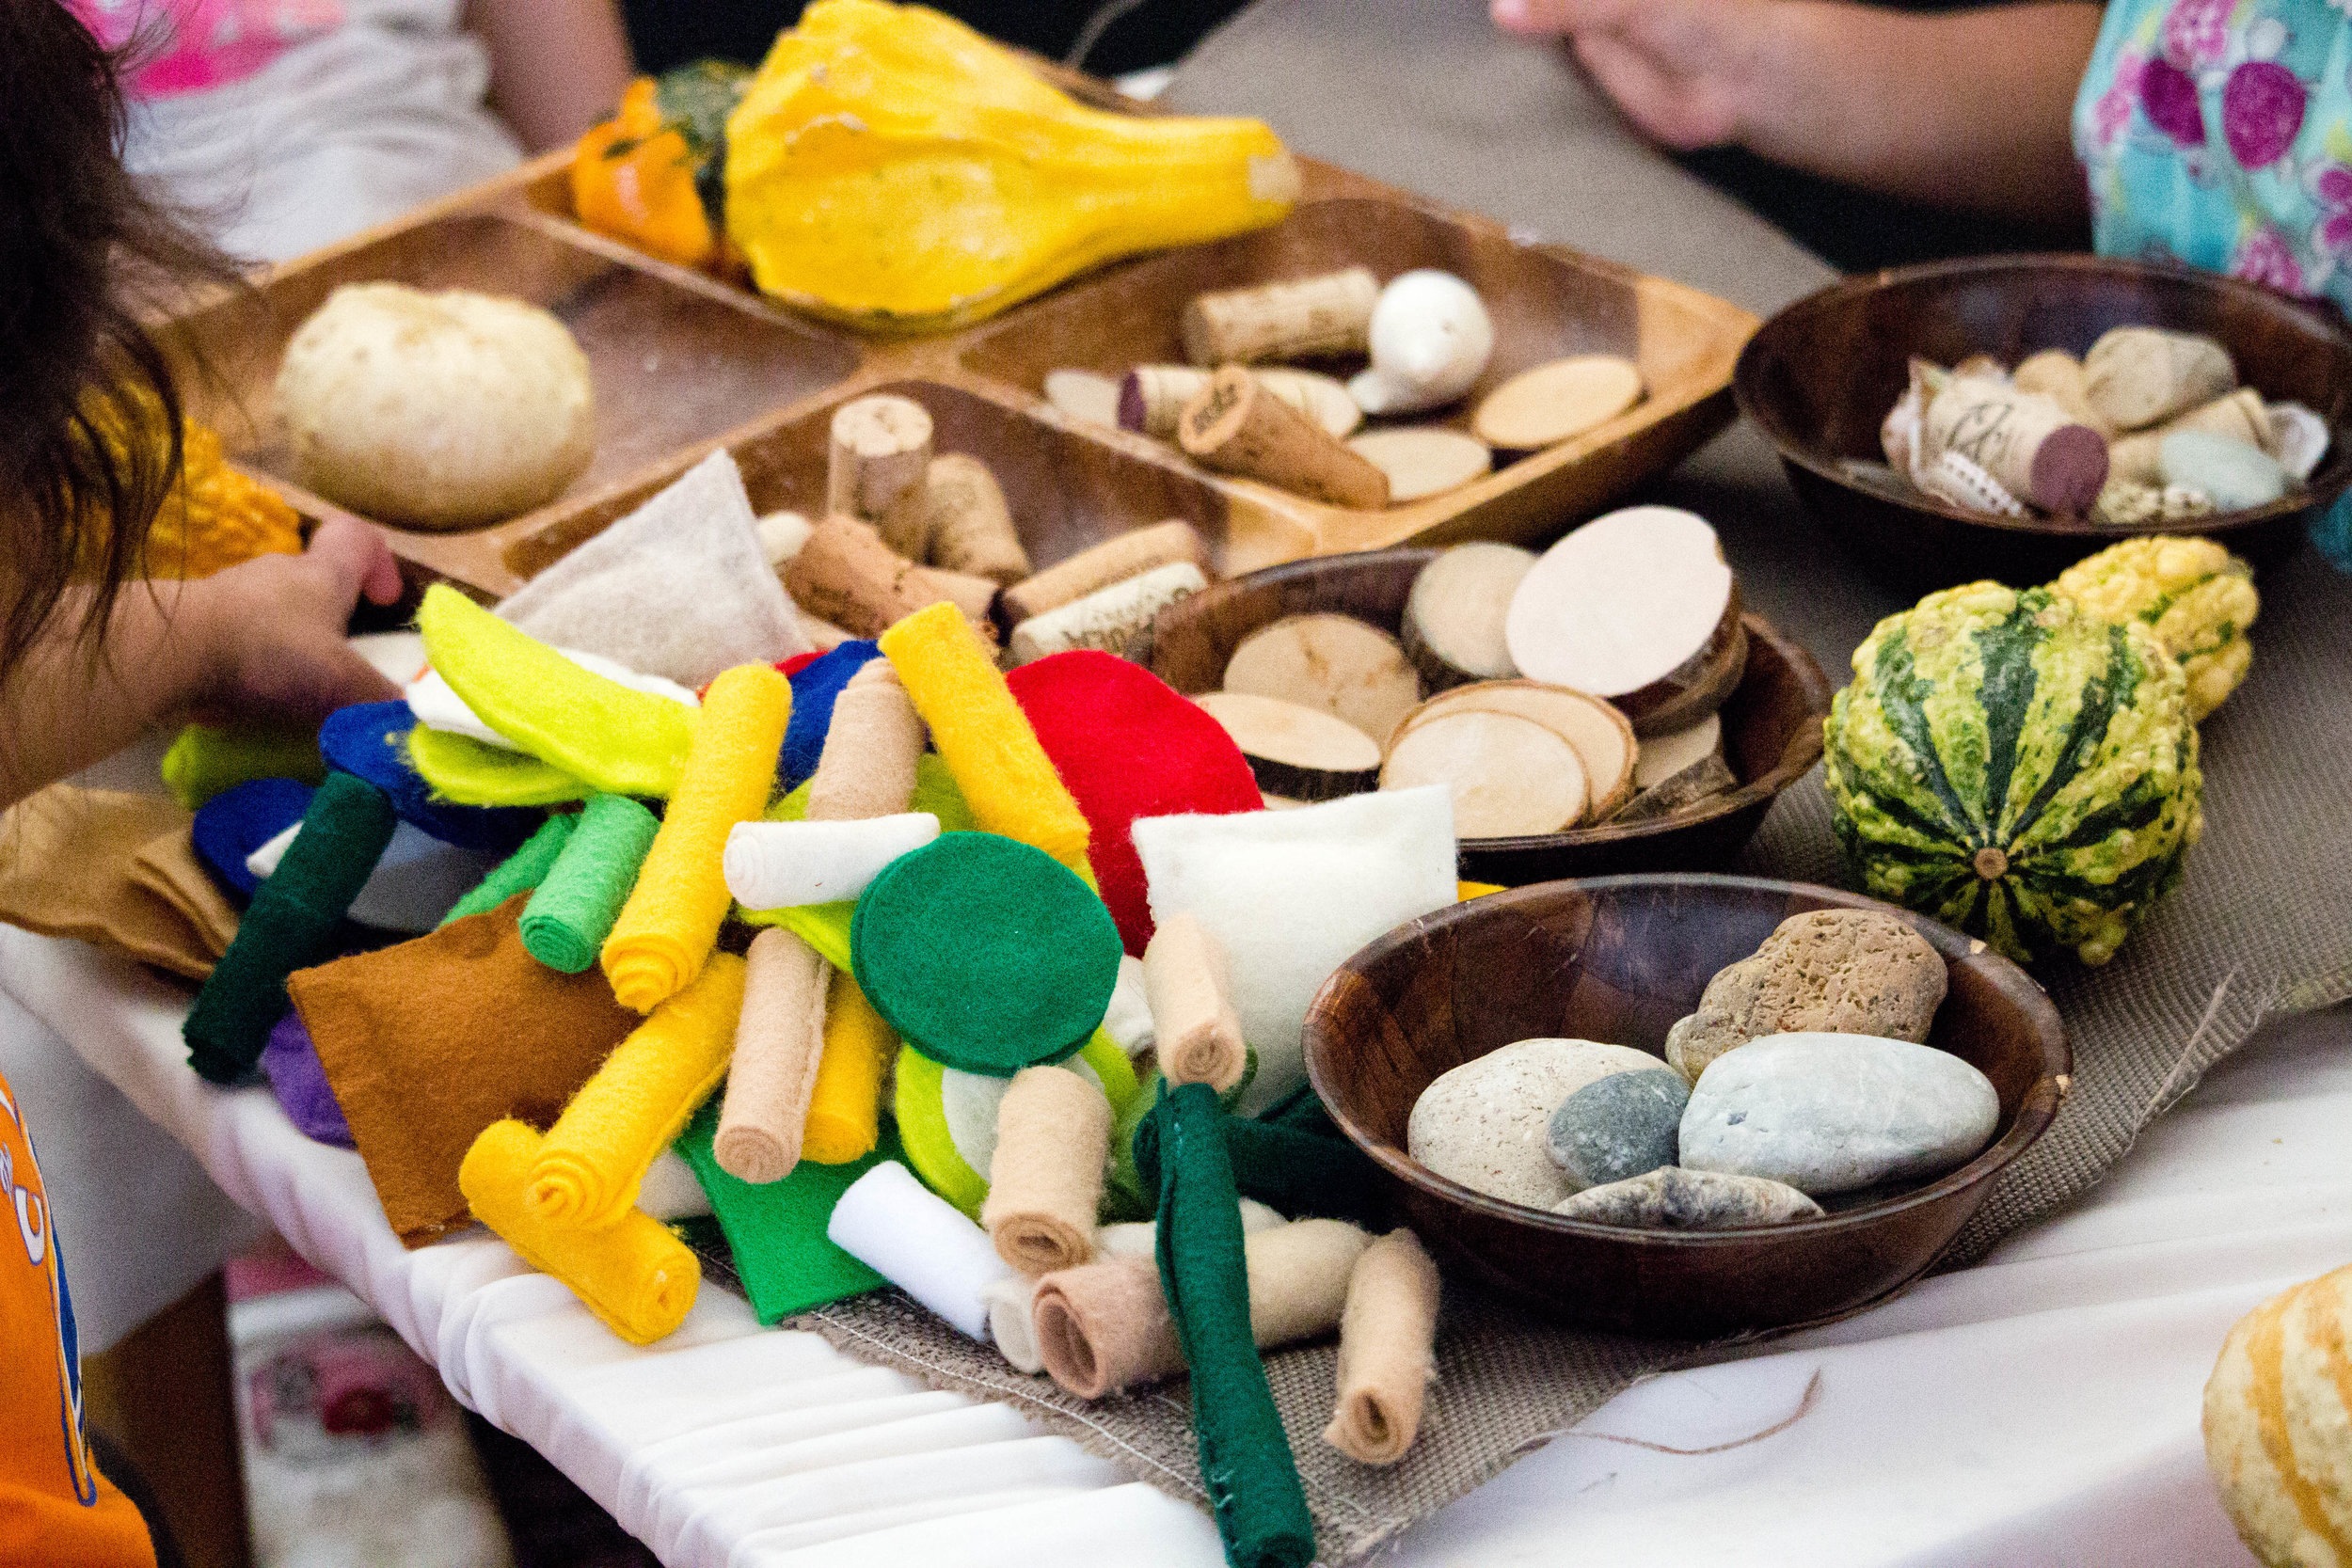 Loose parts and open-ended materials at the CEC.